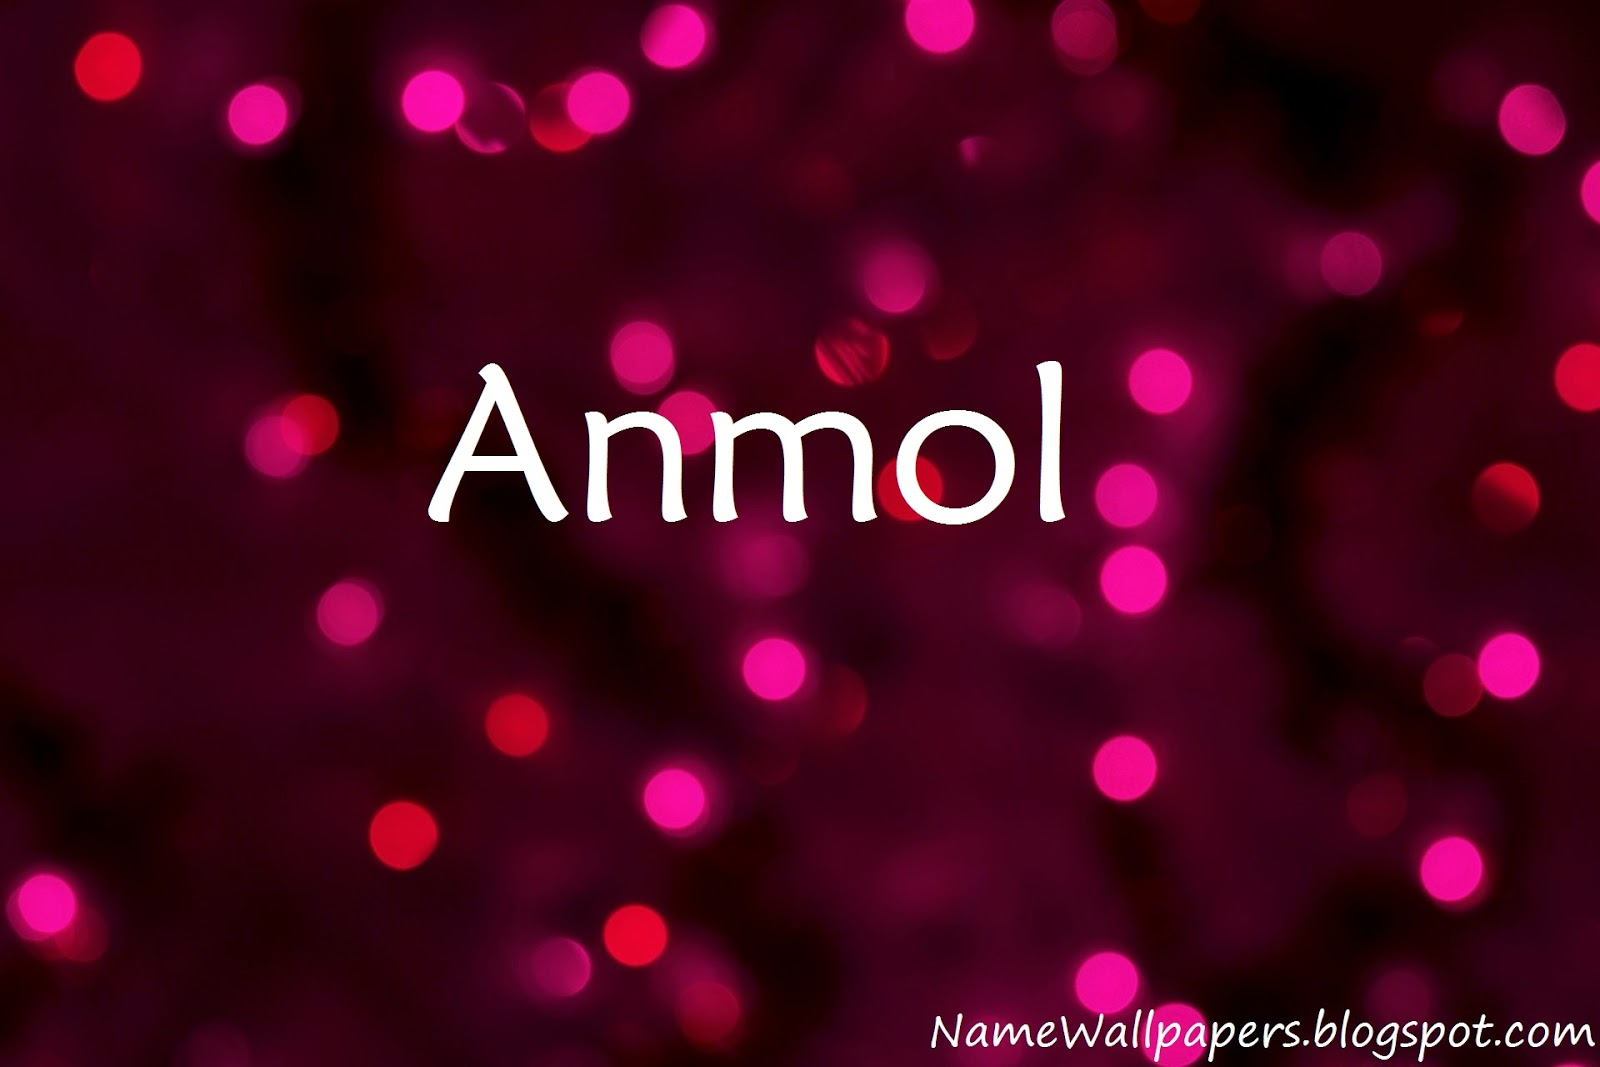 Anmol Name Wallpaper